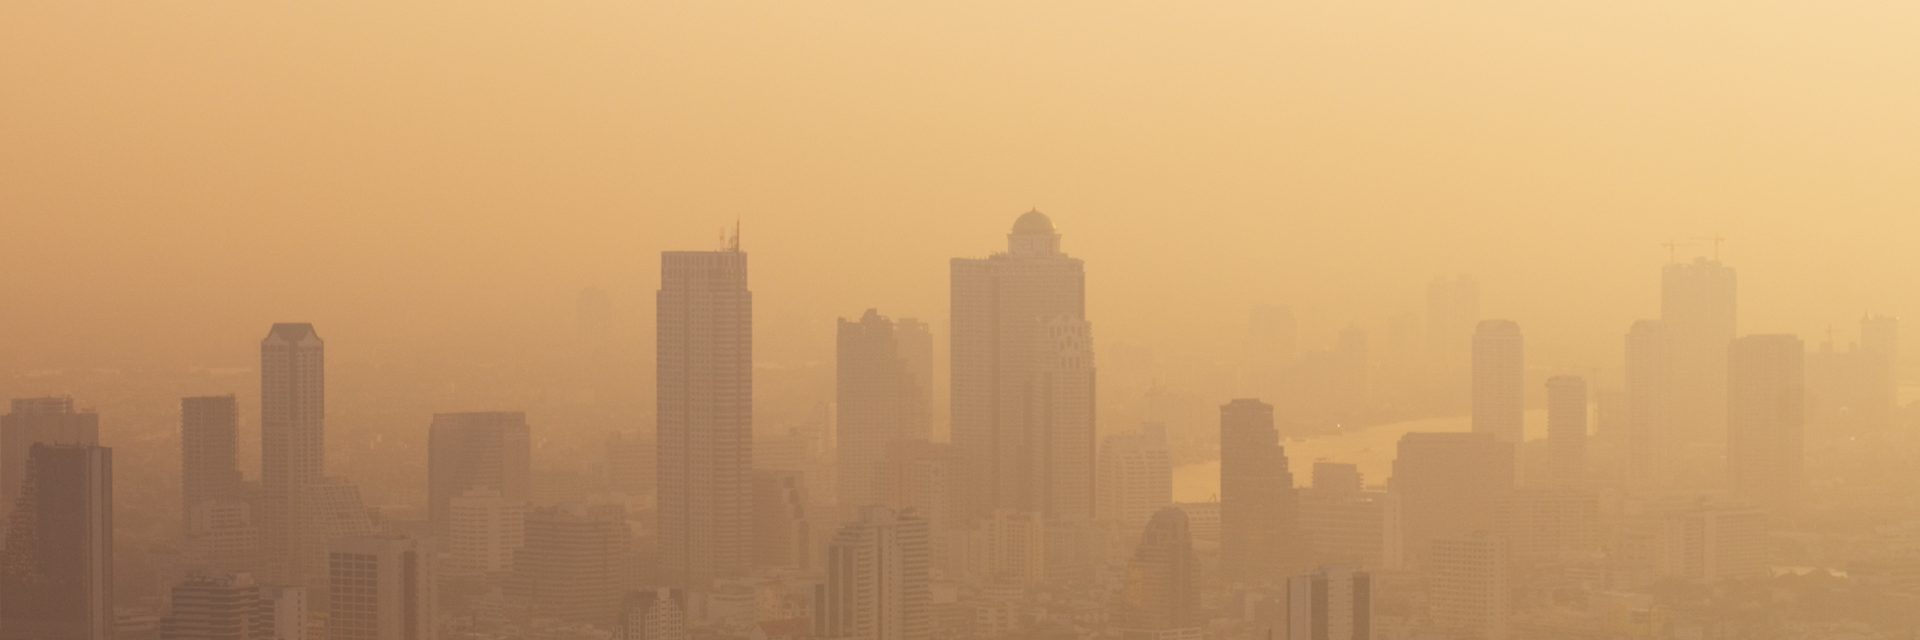 photo of an urban area choked with smog